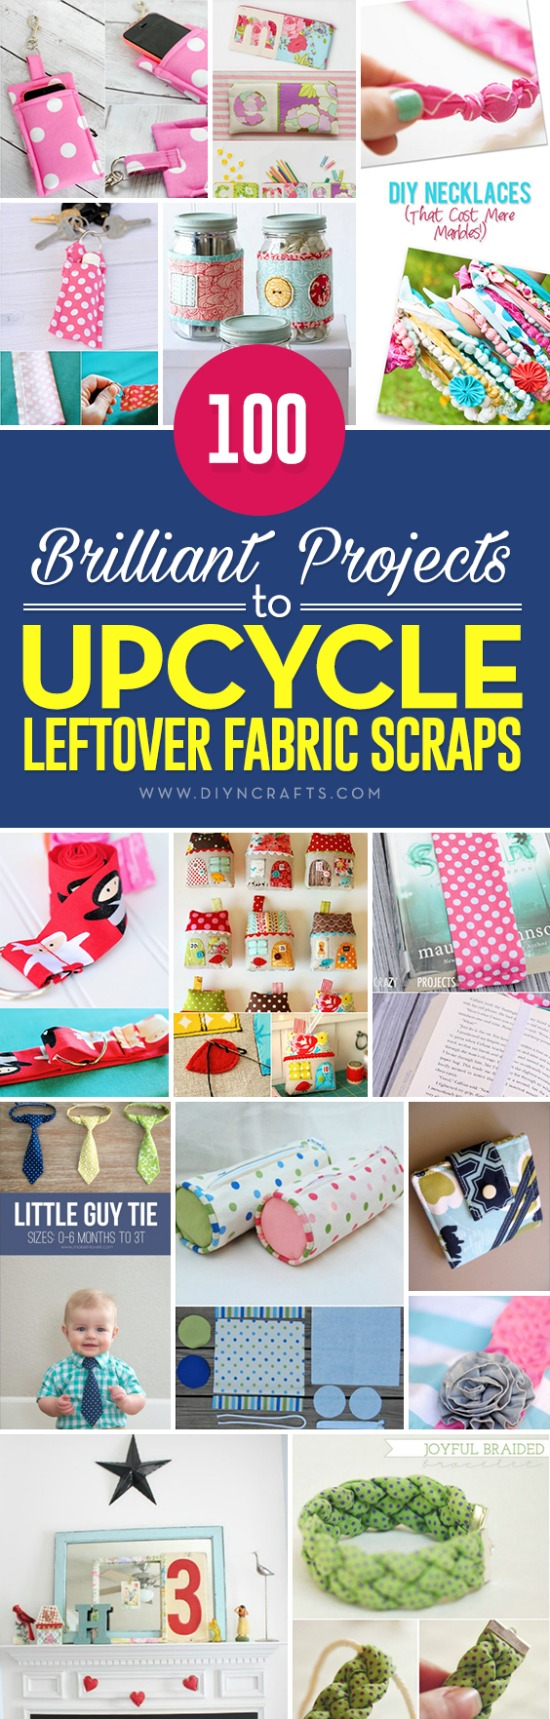 100 Brilliant Projects to Upcycle Leftover Fabric Scraps - If you love sewing, then chances are you have a few fabric scraps left over. You aren't going to always have the perfect amount of fabric for a project, after all. If you've often wondered what to do with all those loose fabric scraps, we've got quite a treat for you. So with the leftover fabric from those adorable Halloween costumes or your other DIY clothing projects, we'll show you how to create some really great bags, wallets, and so much more.